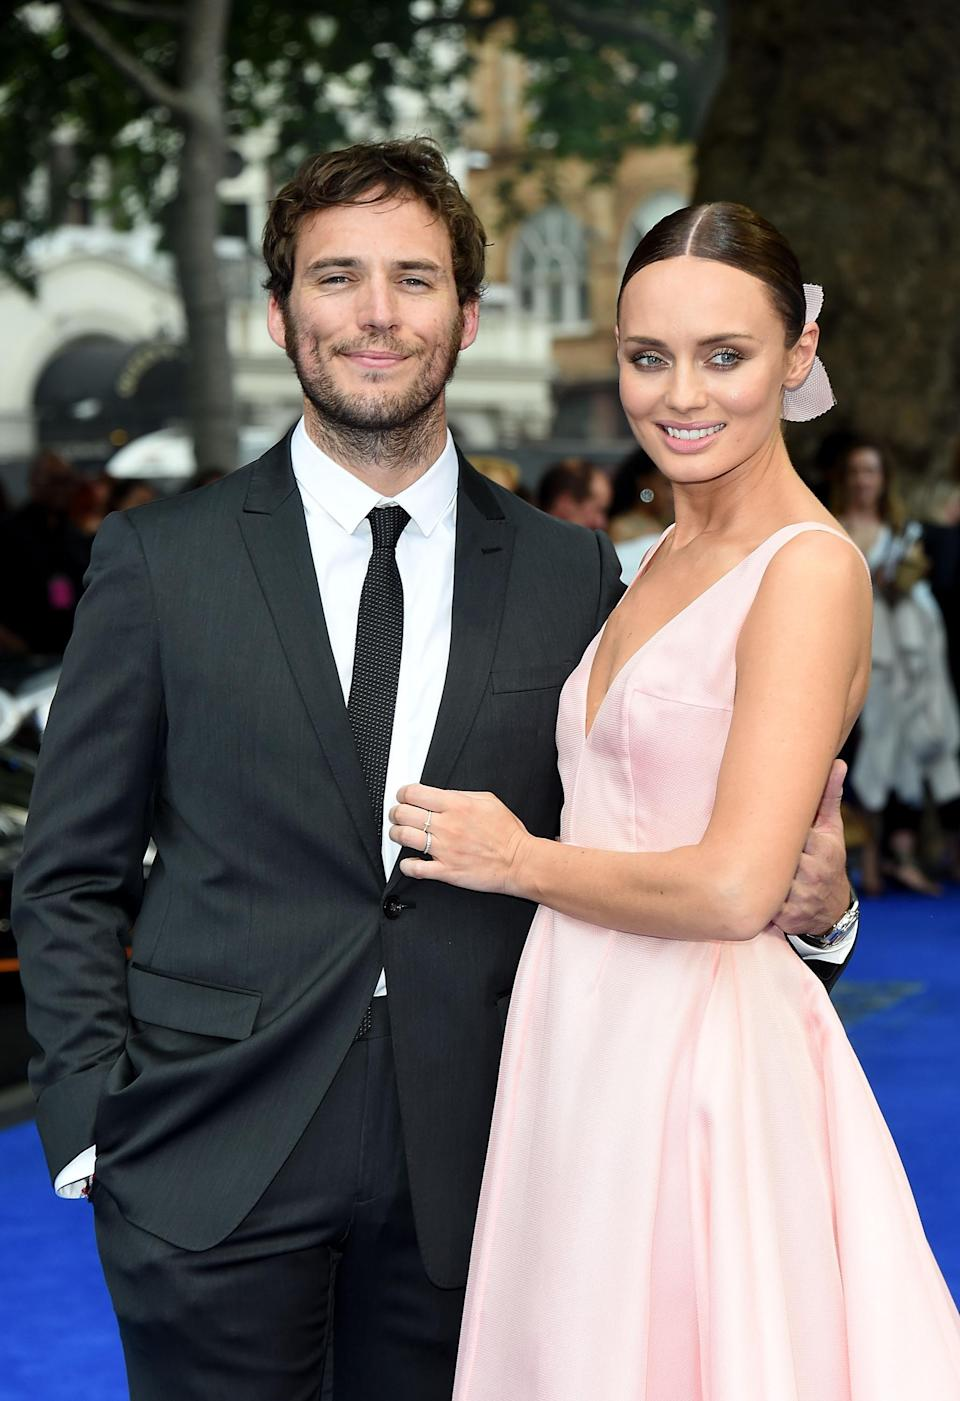 Sam Claflin says he'd rather spend time with his wife, Laura Haddock, and their two children than be an activist (Getty)